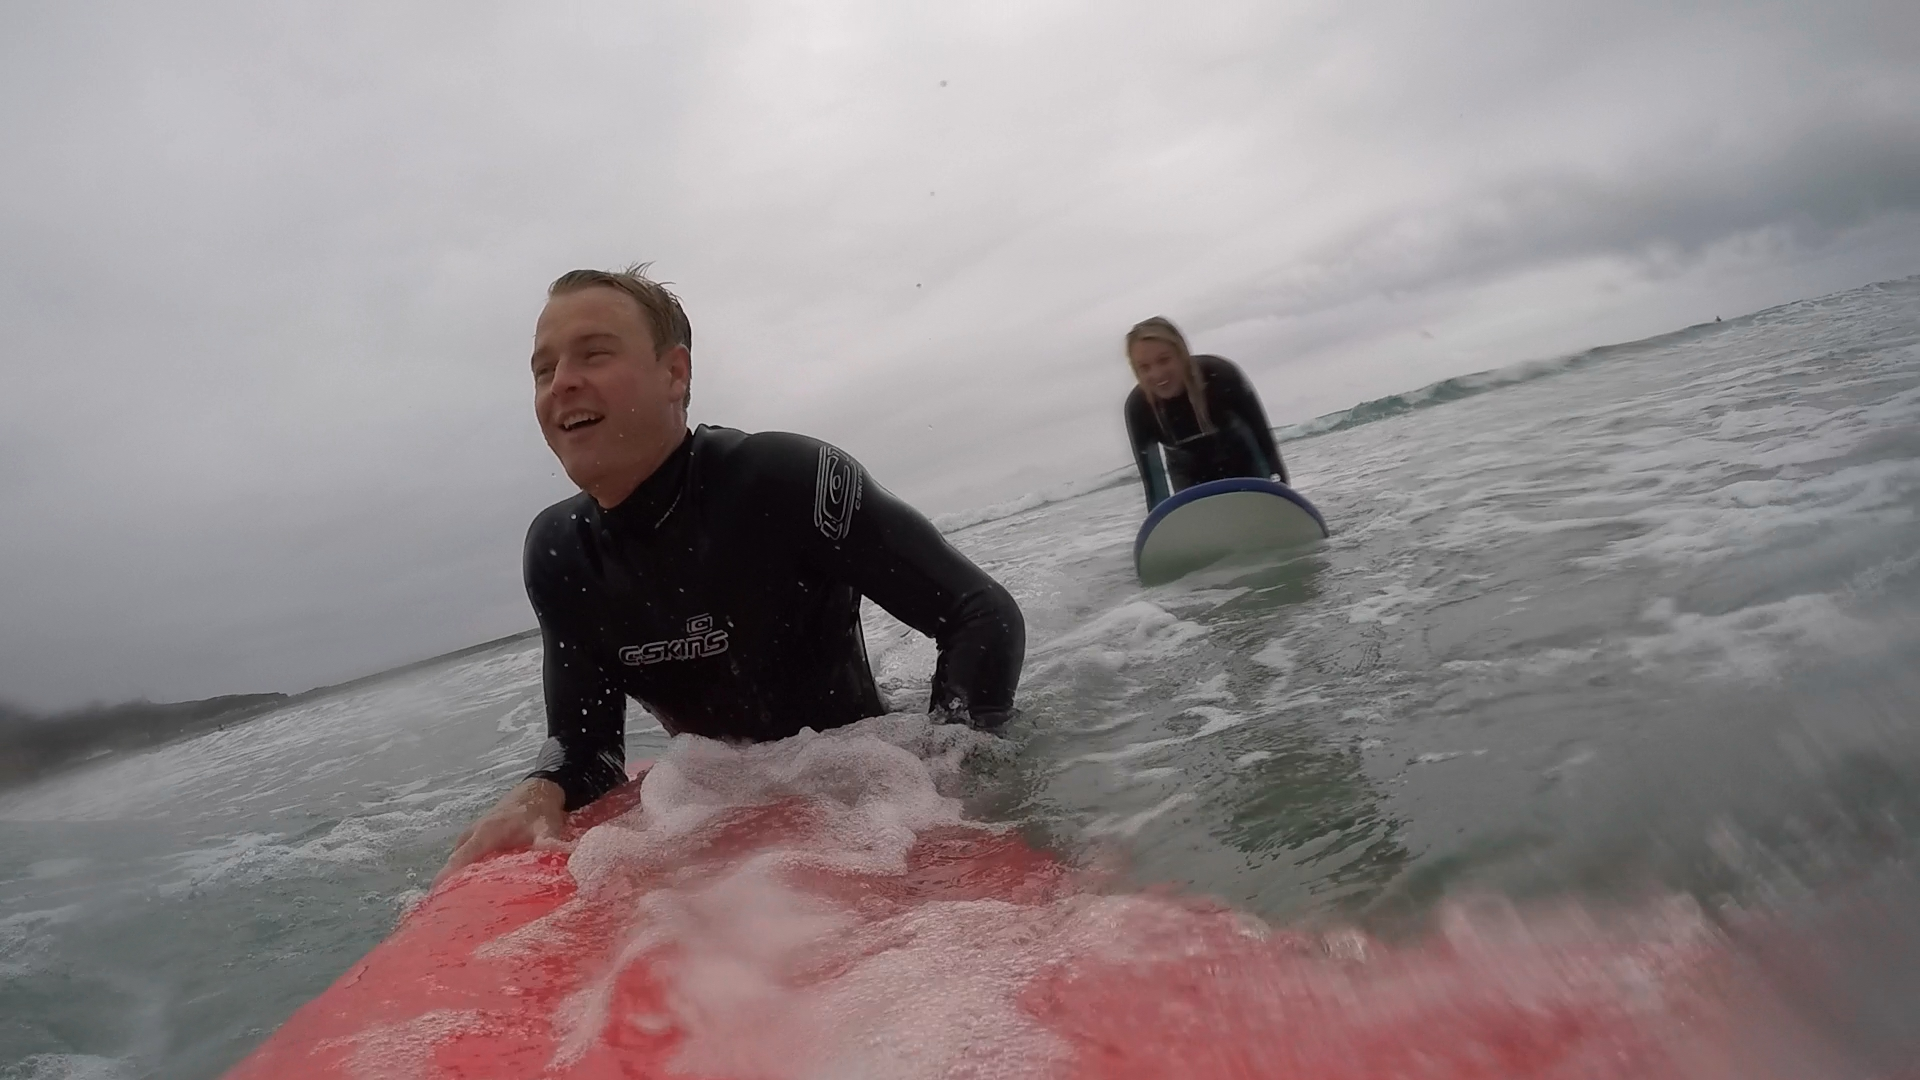 Surfing couple 2